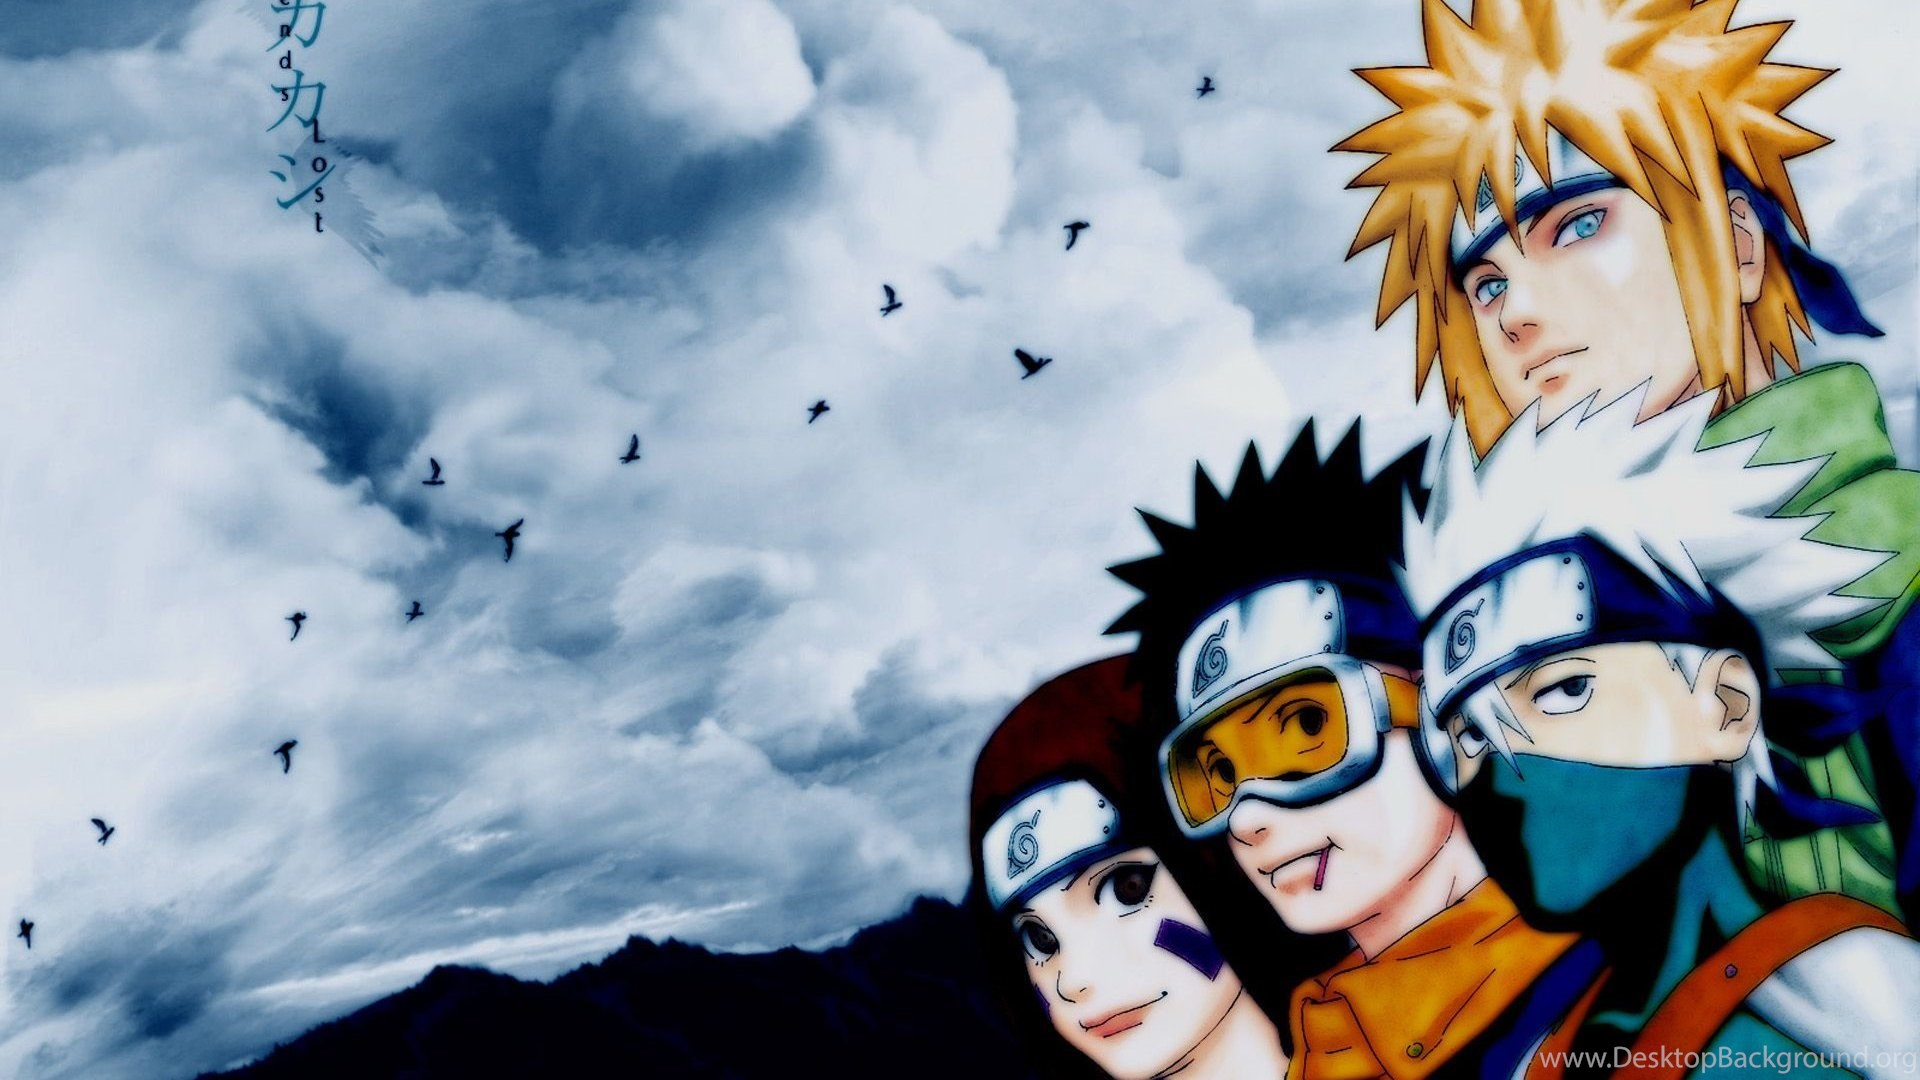 Wallpapers Naruto Pc Animation Hot Anime Hd 1920x1080 Desktop Background